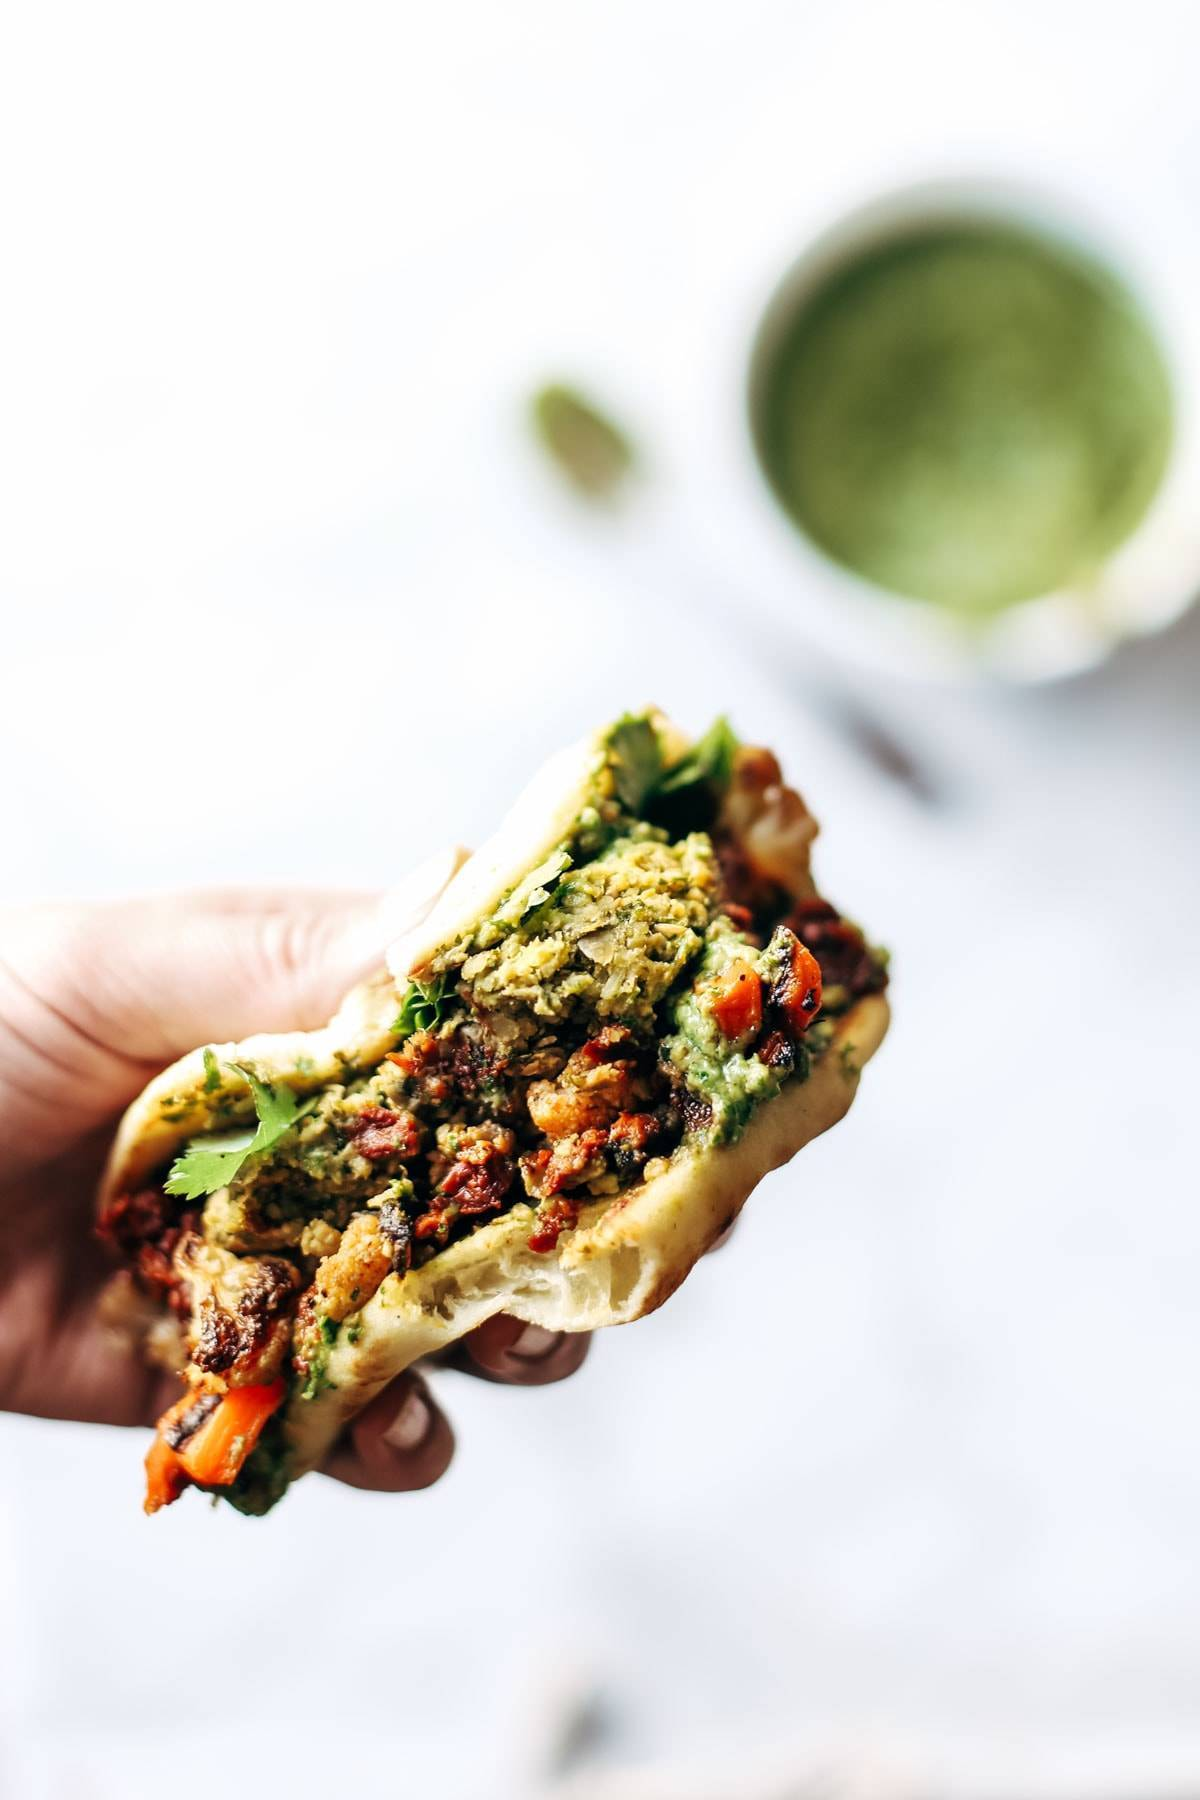 Naan-wich: 5 ingredient falafel, roasted veggies, and avocado sauce stuffed between pillowy garlic naan. Best sandwich recipe I've ever made. | pinchofyum.com